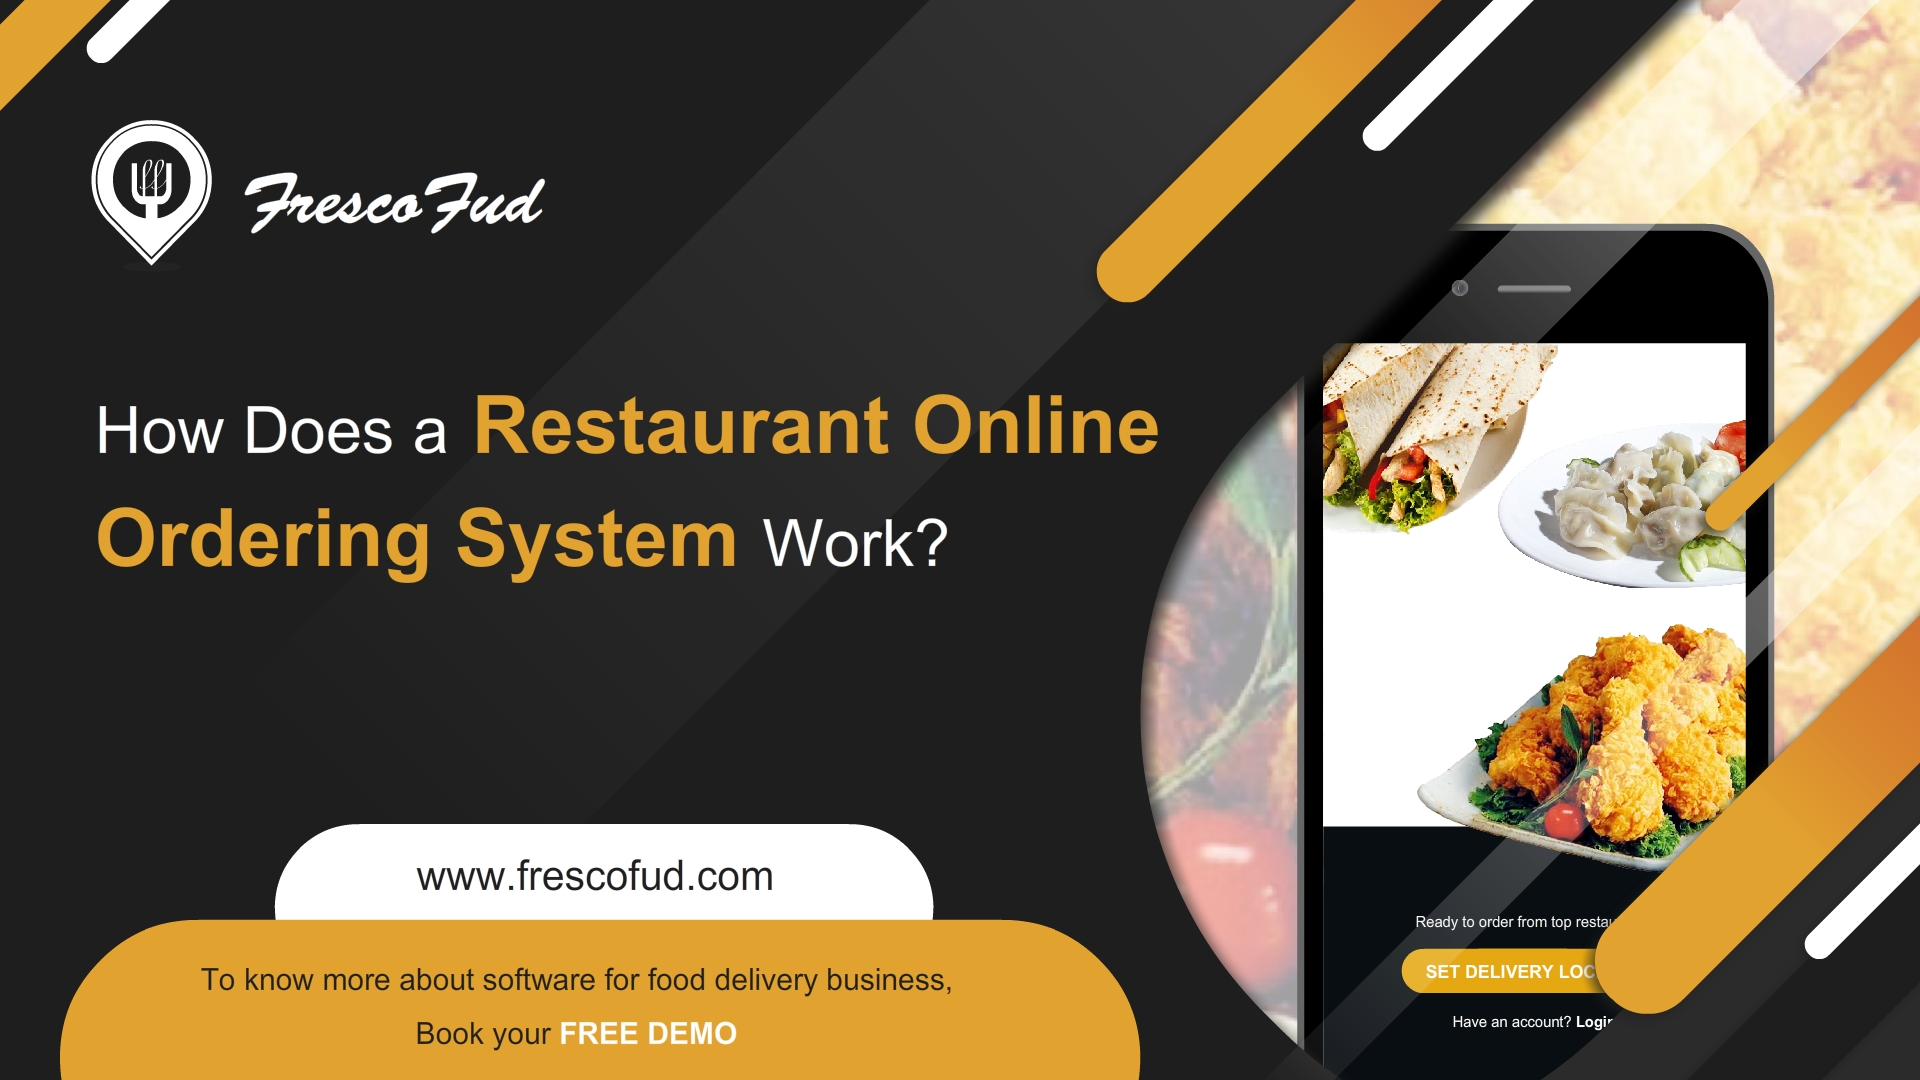 How Does a Restaurant Online Ordering System Work?